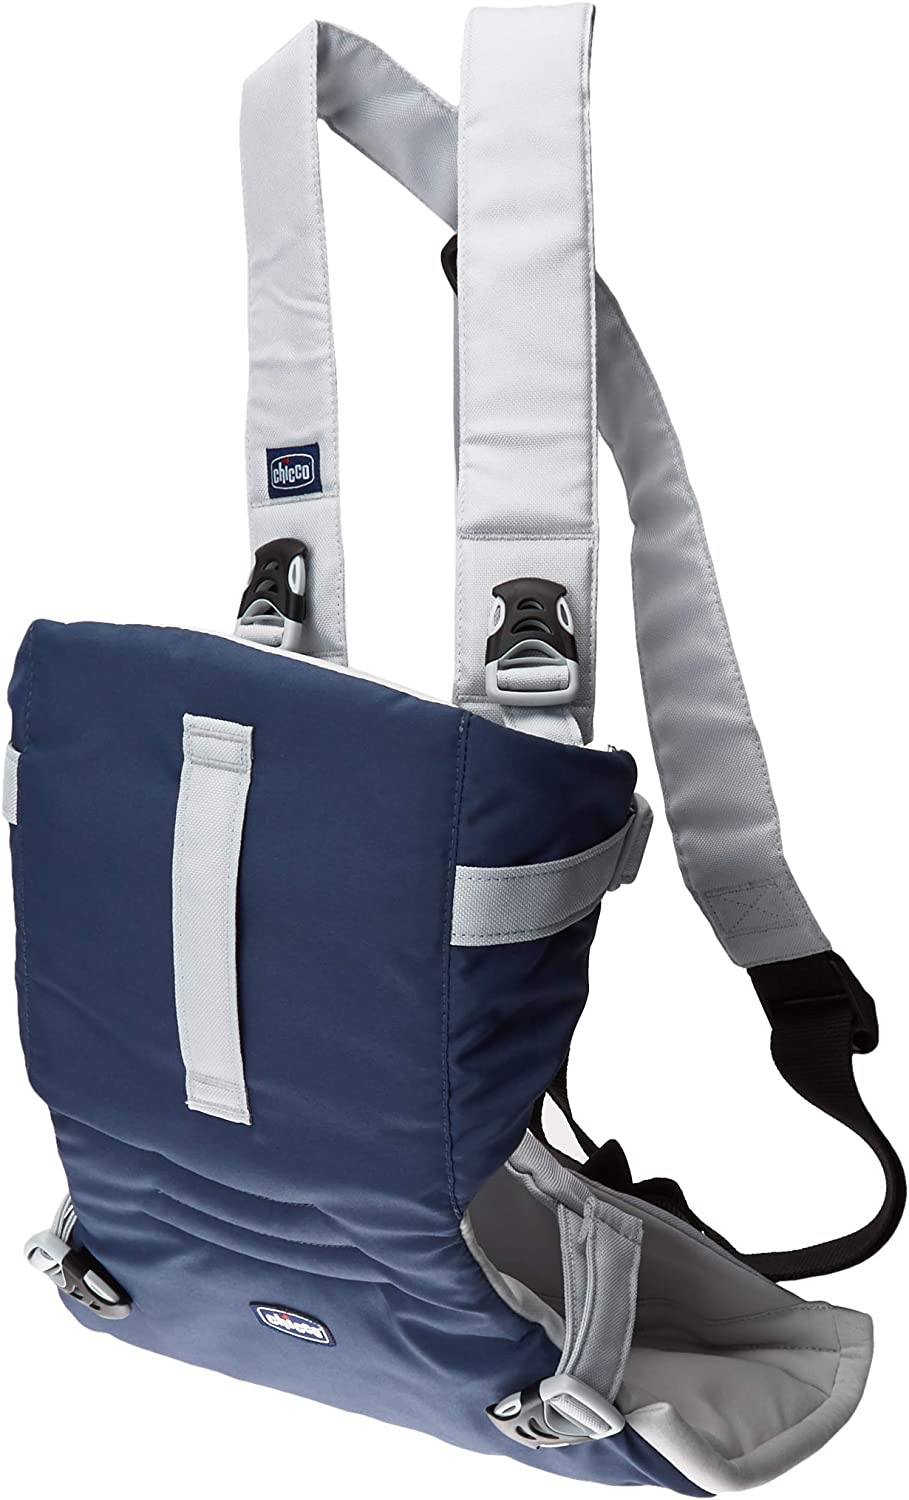 Chicco Easy Fit portabebés Blue Passion